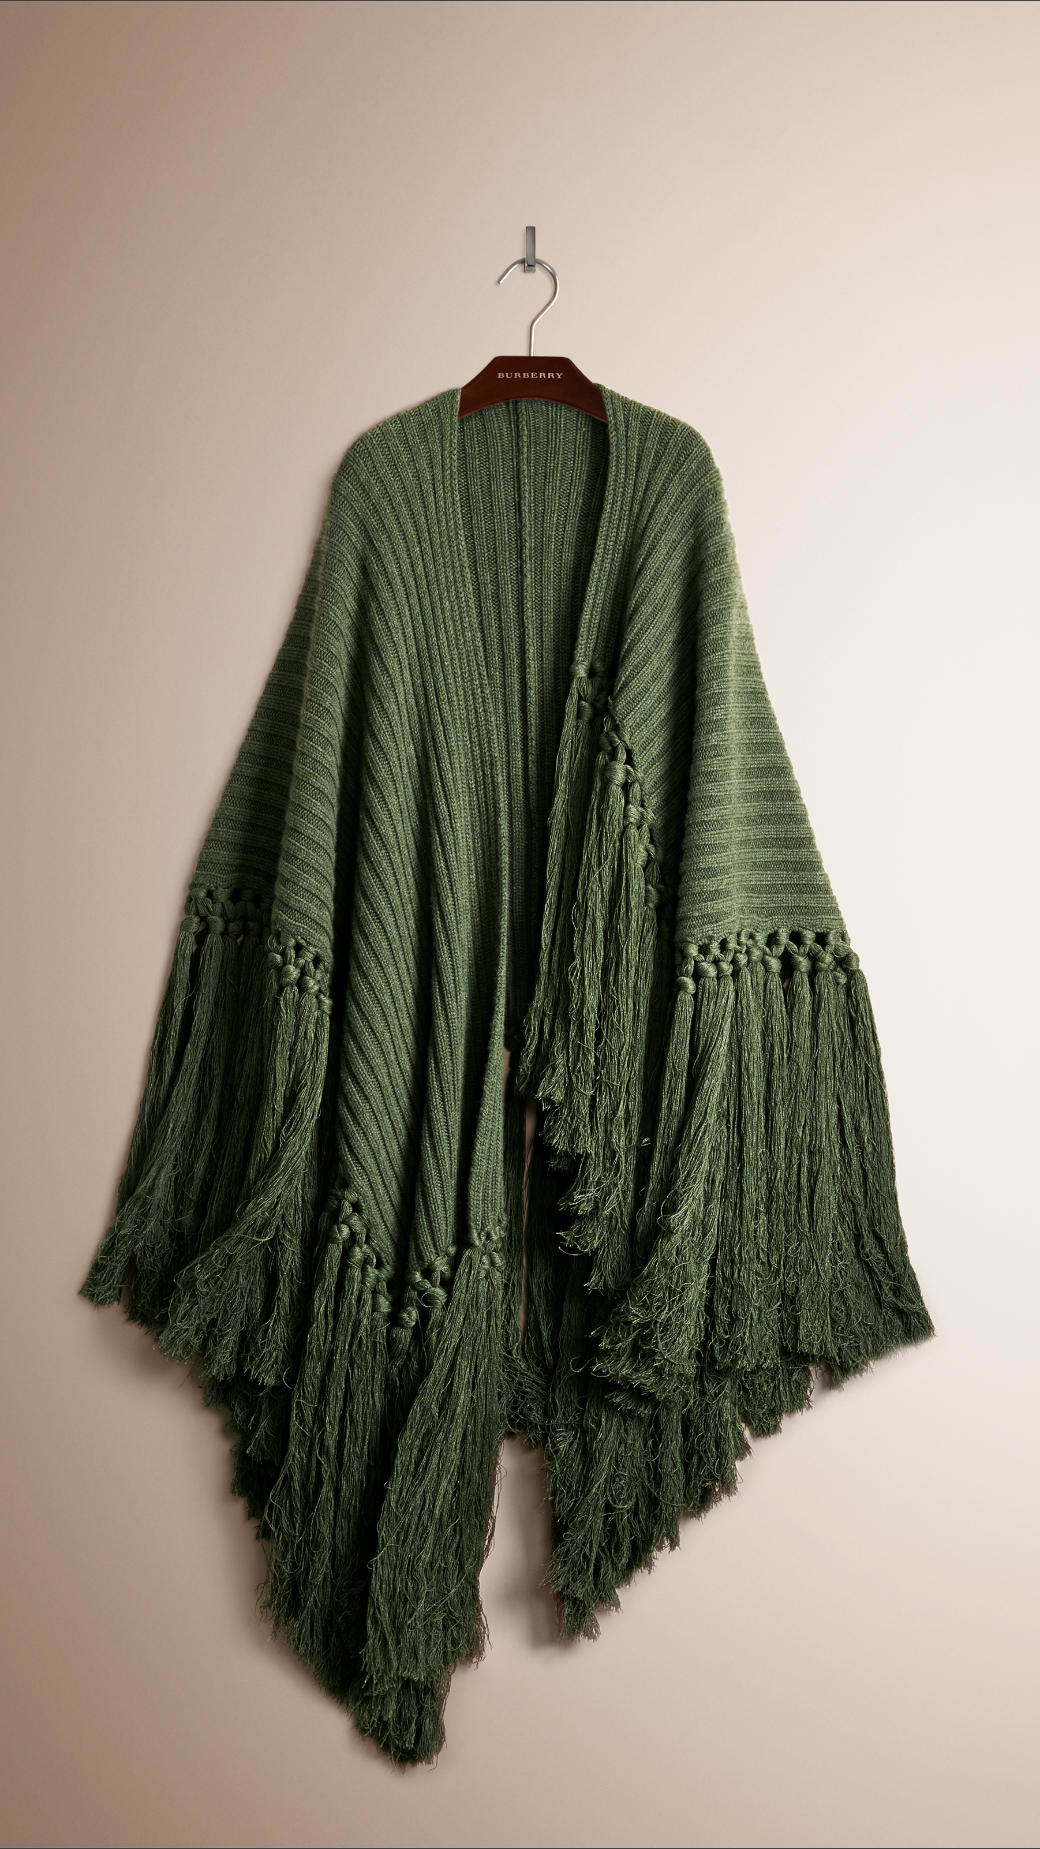 Knitting Pattern Burberry Scarf : Burberry Fringe Detail Knitted Cashmere Poncho in Green for Men Lyst